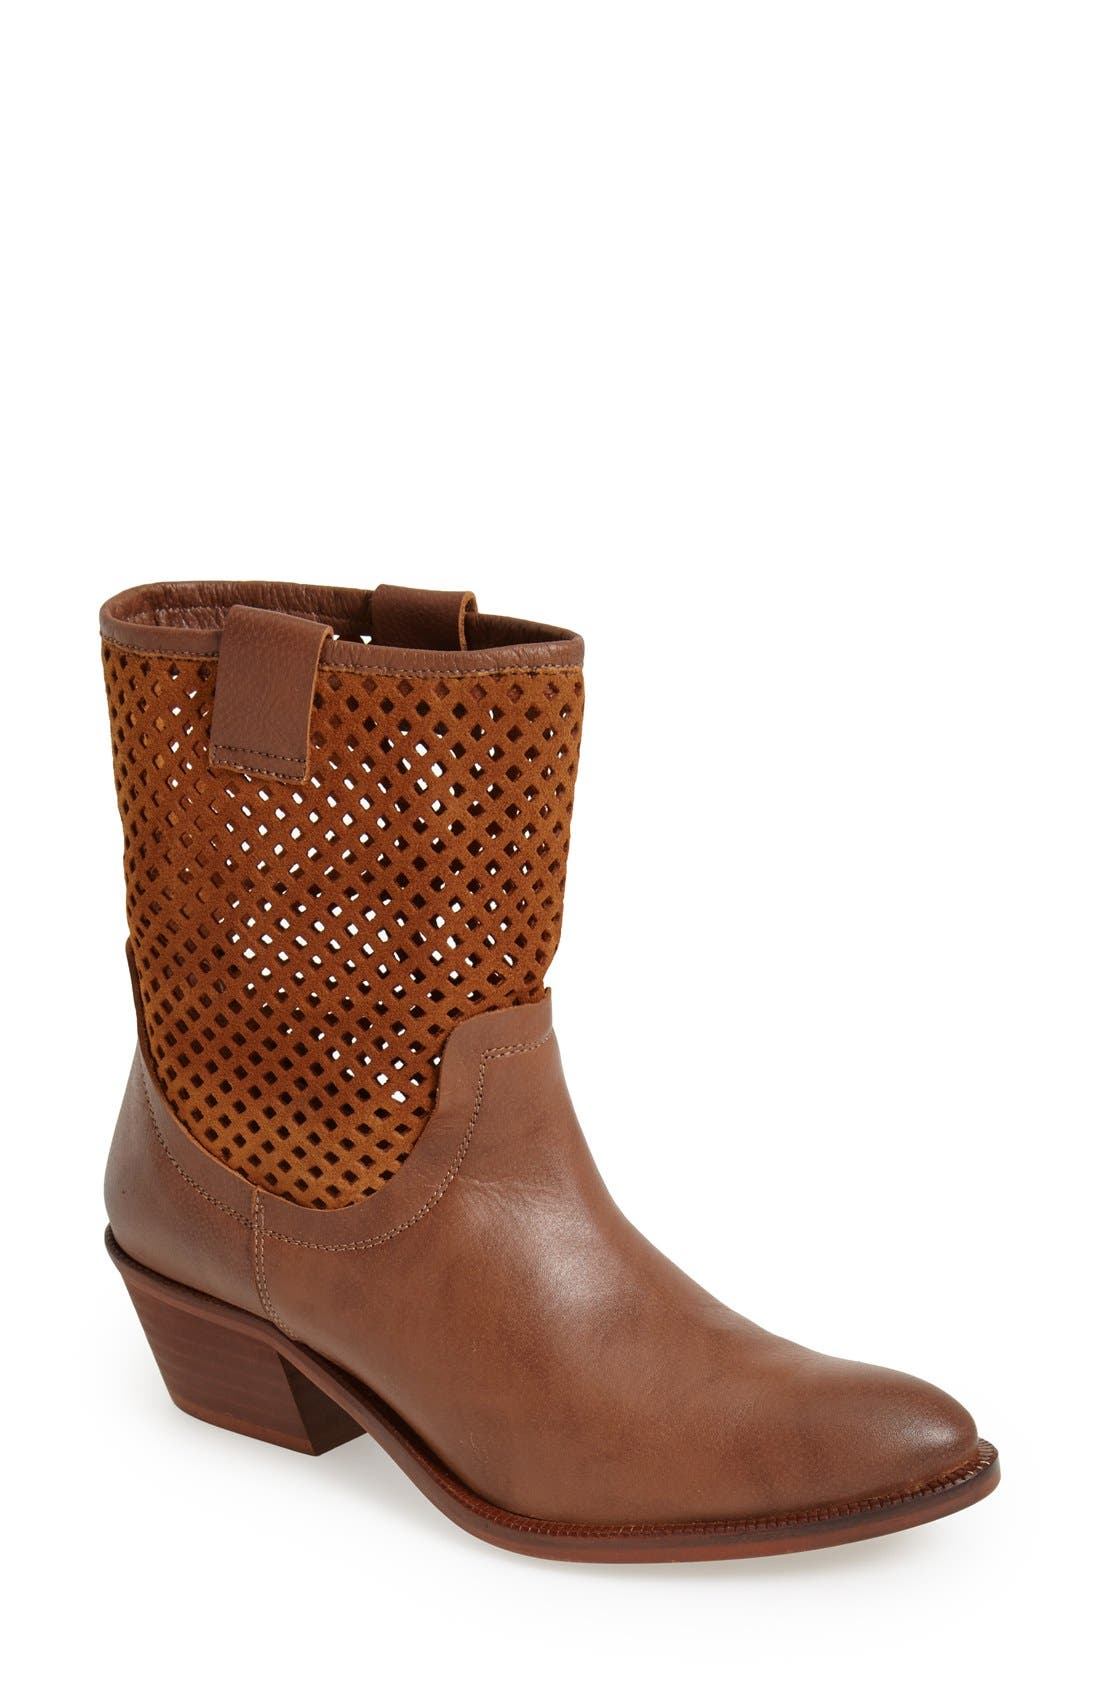 Main Image - SIXTYSEVEN 'Laurie' Perforated Leather Short Boot (Women)